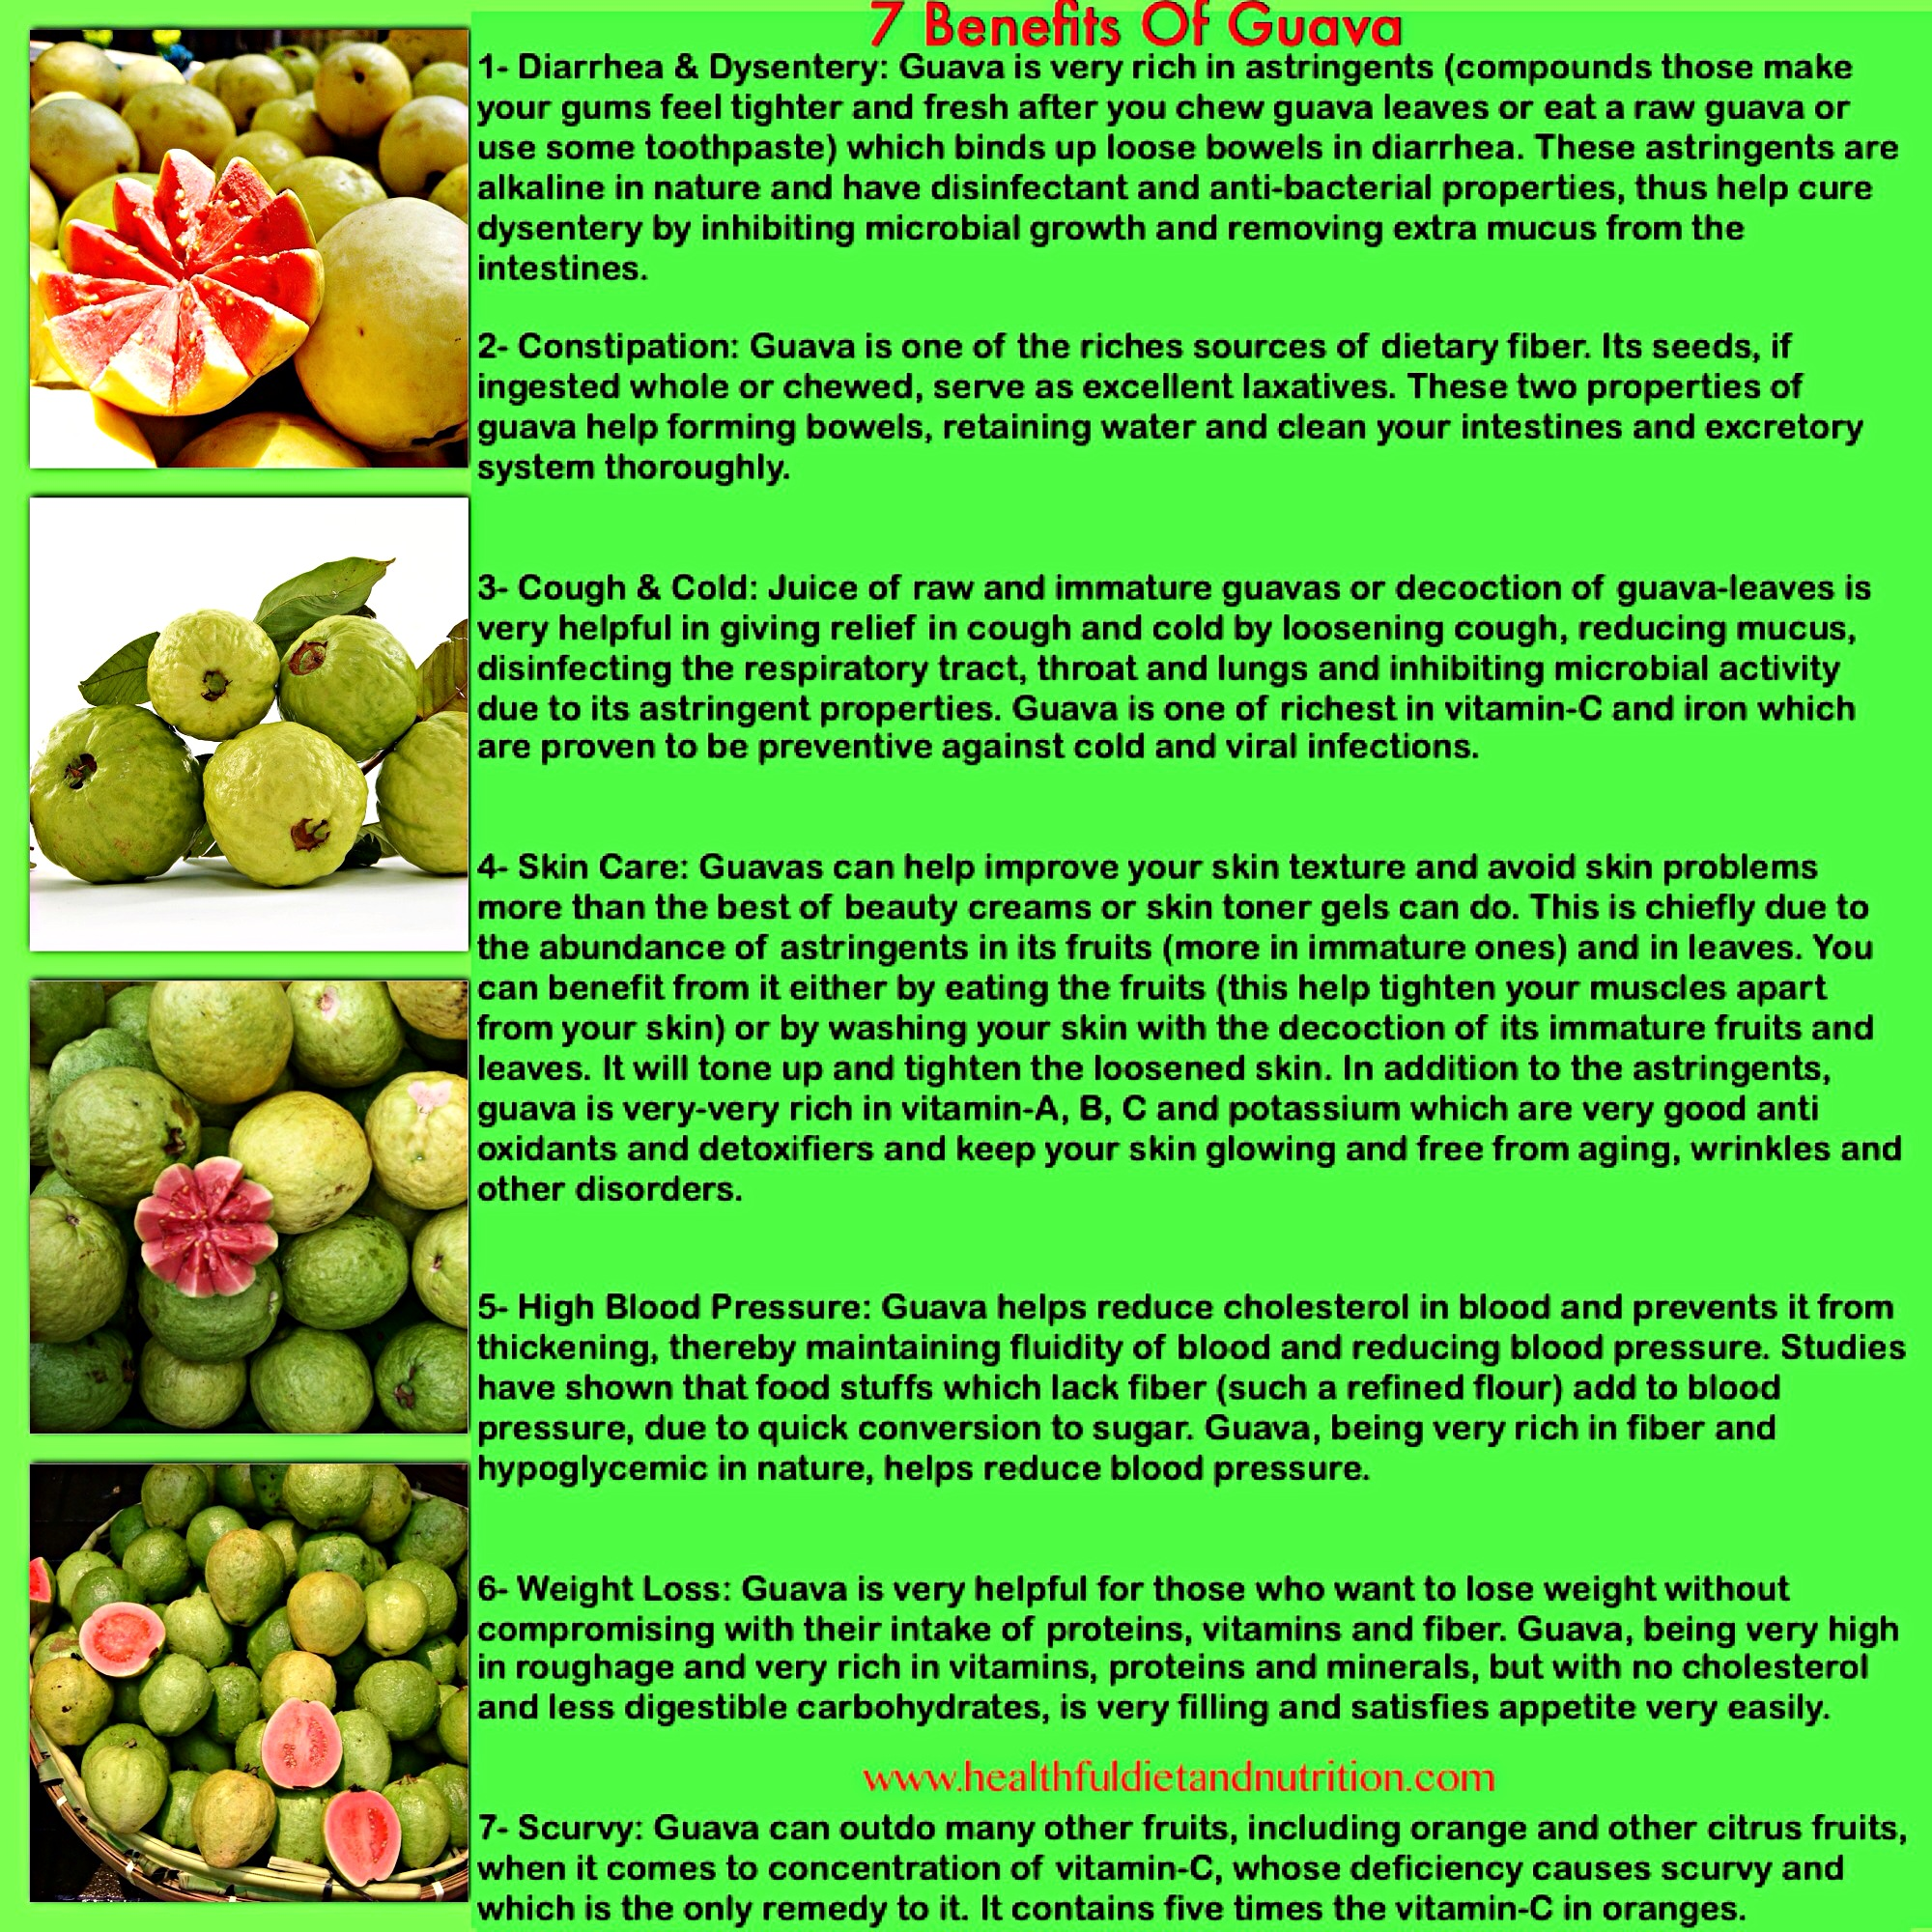 7 Benefits of Guava Fruit